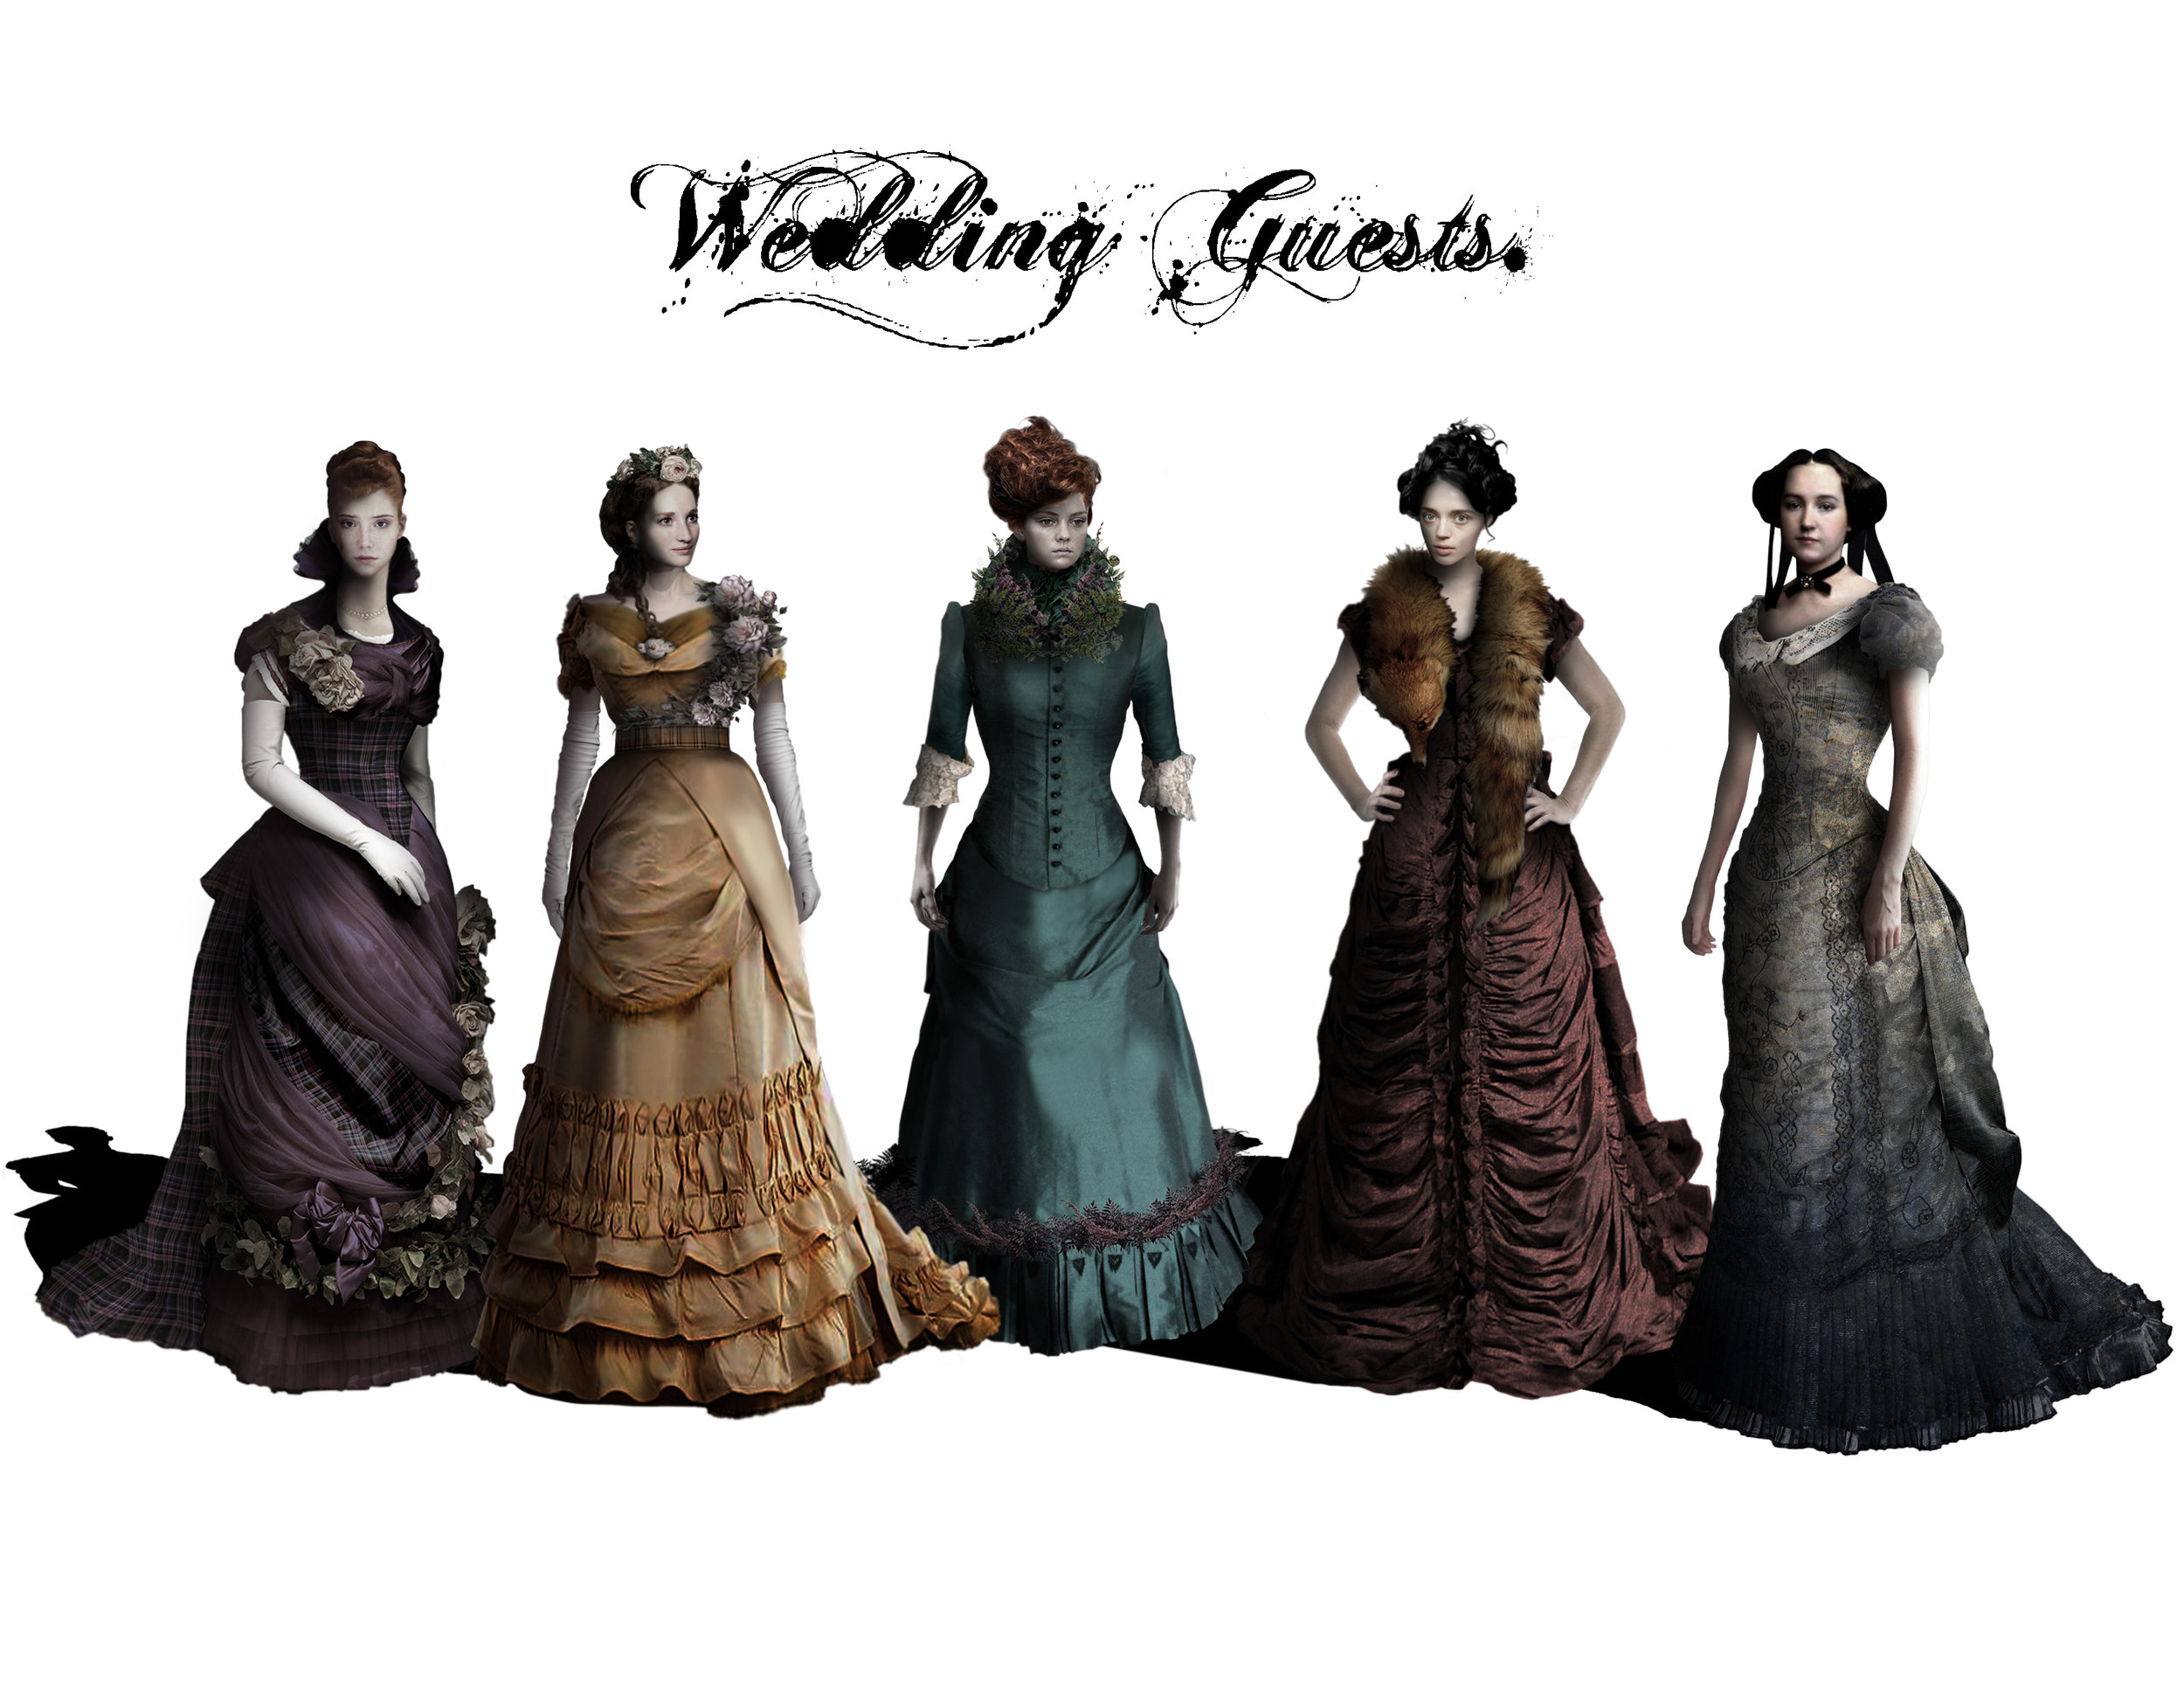 WEDDING GUESTS - Costume Designs